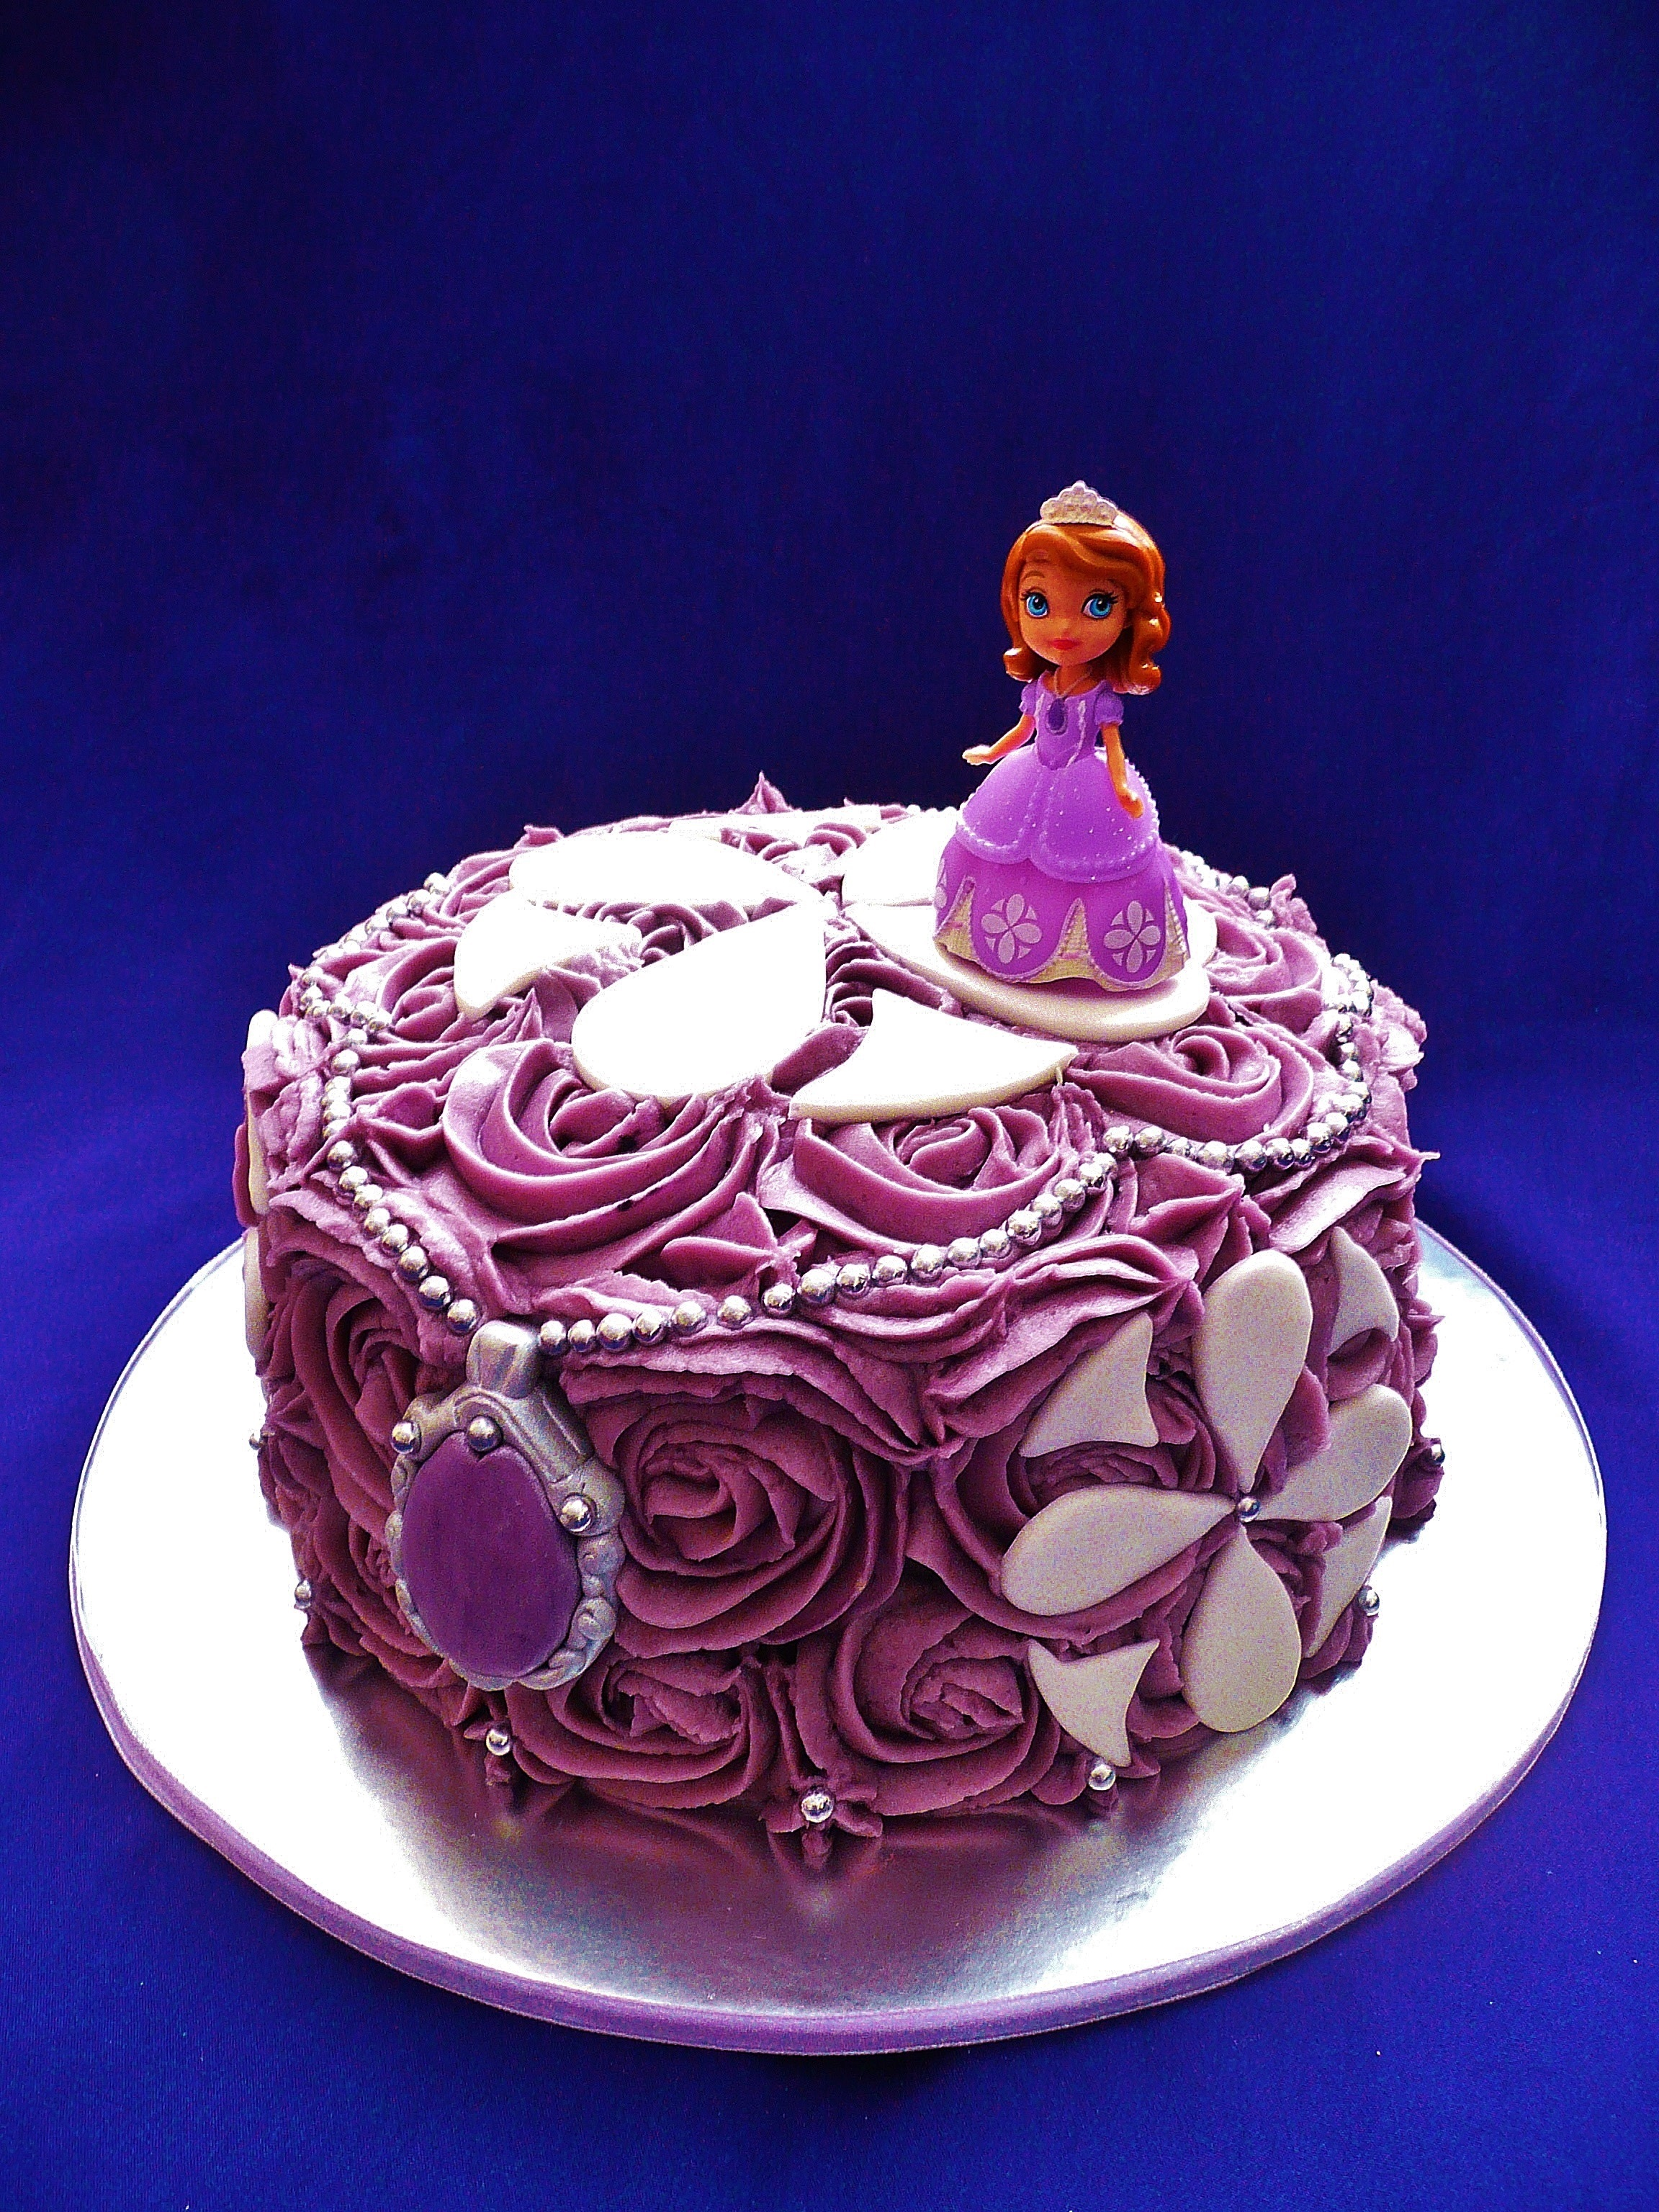 Cake Images Sofia : Sofia Cakes Cake Ideas and Designs